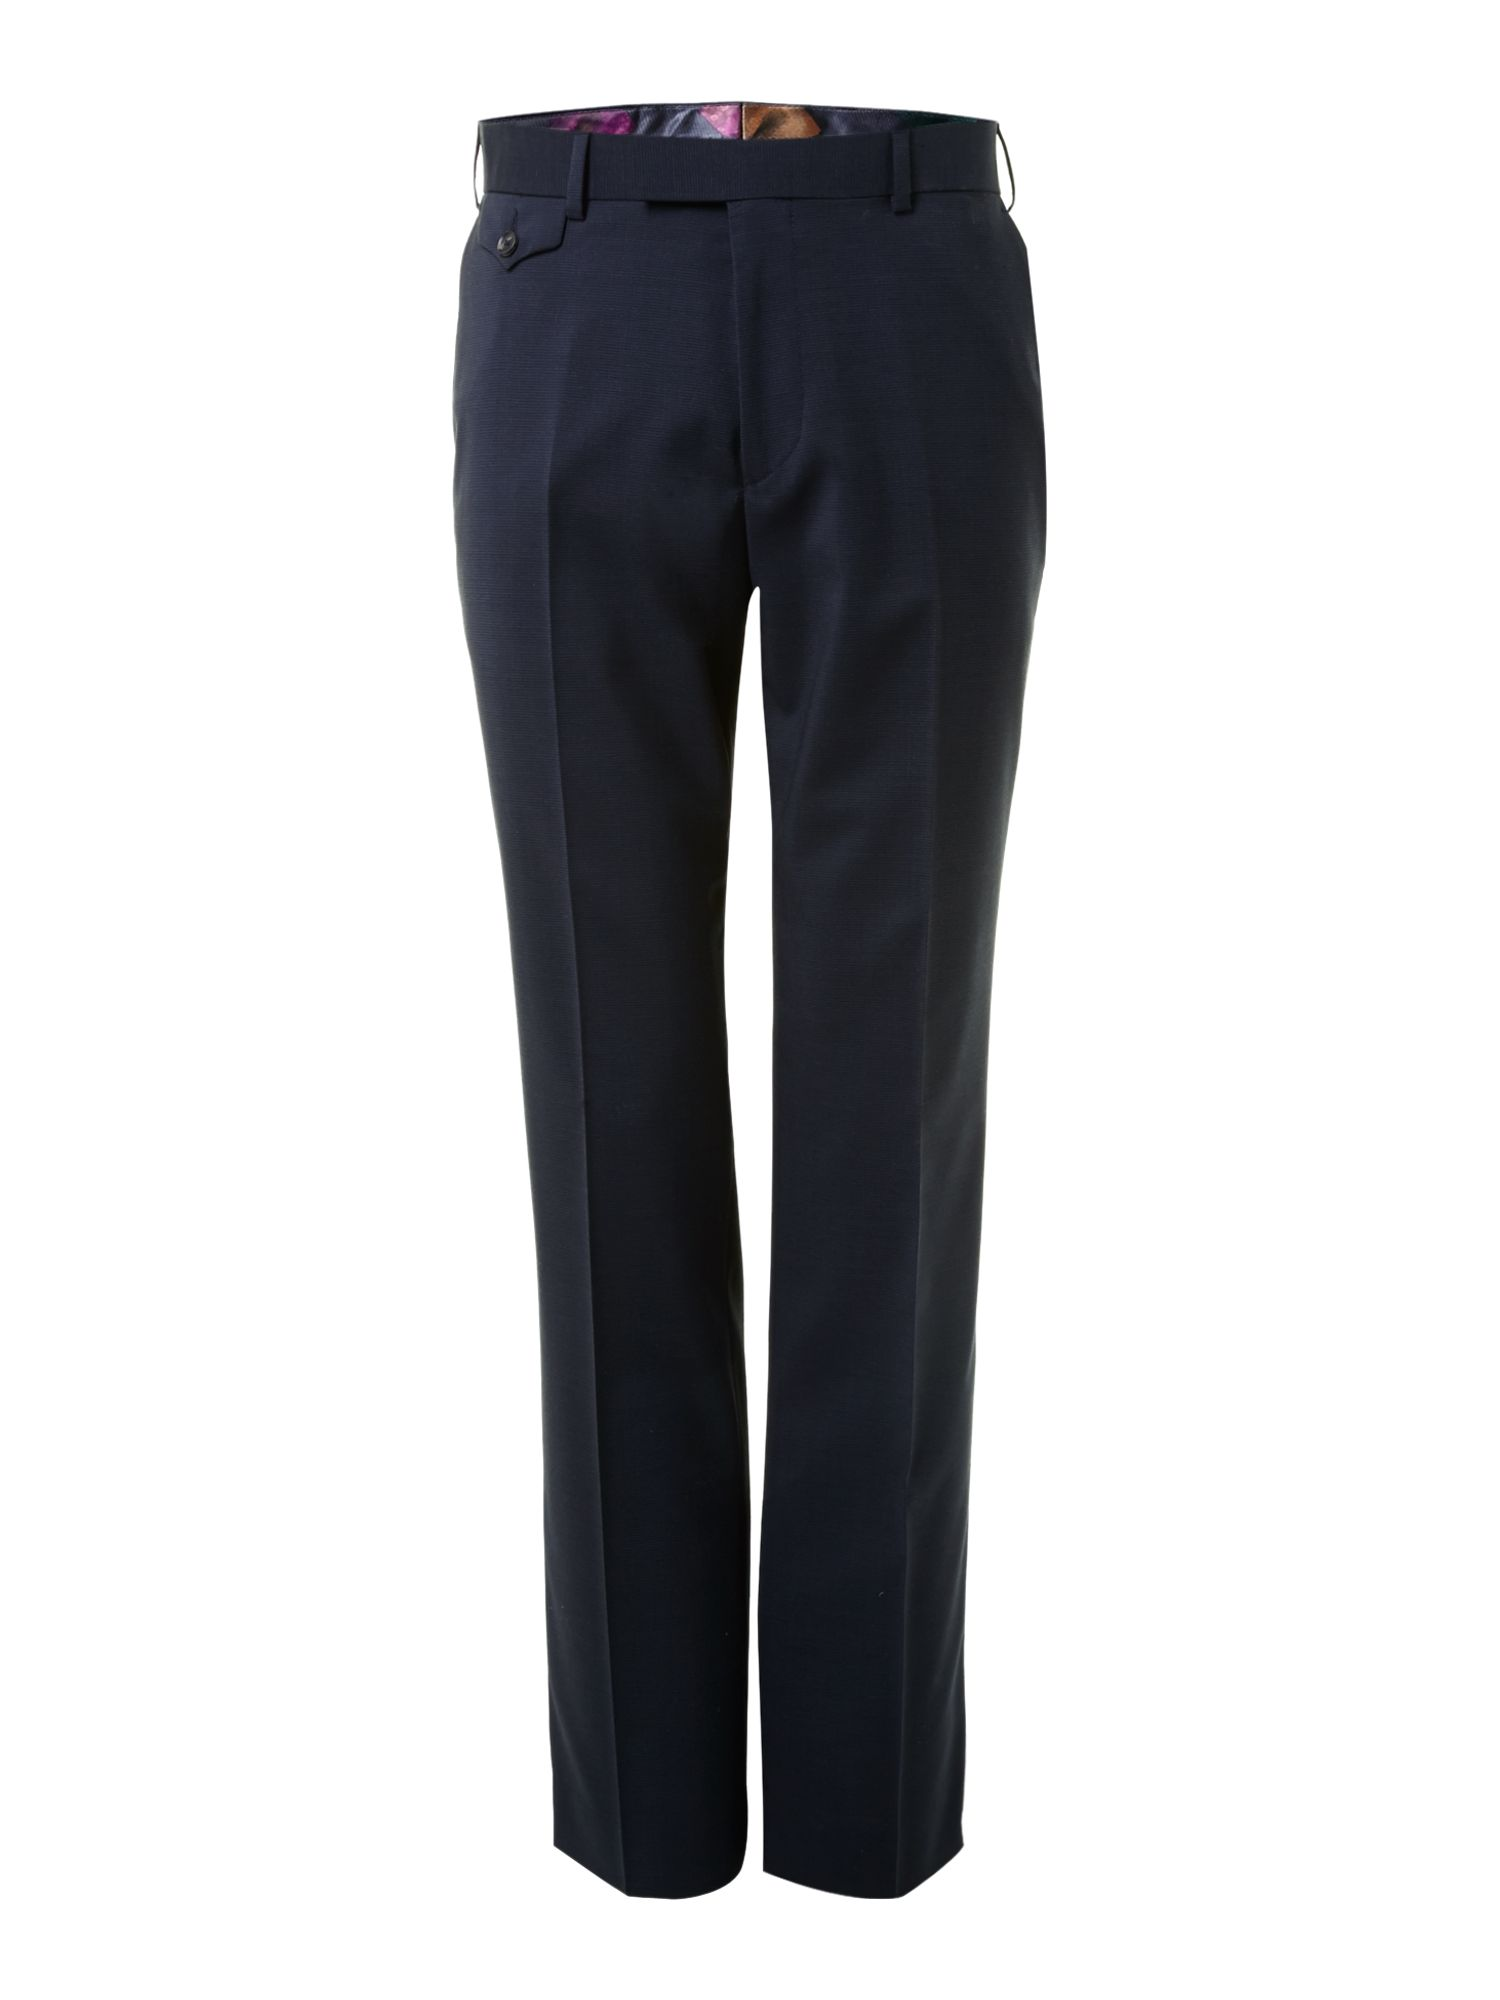 Kingdo regular fit micro texture trousers